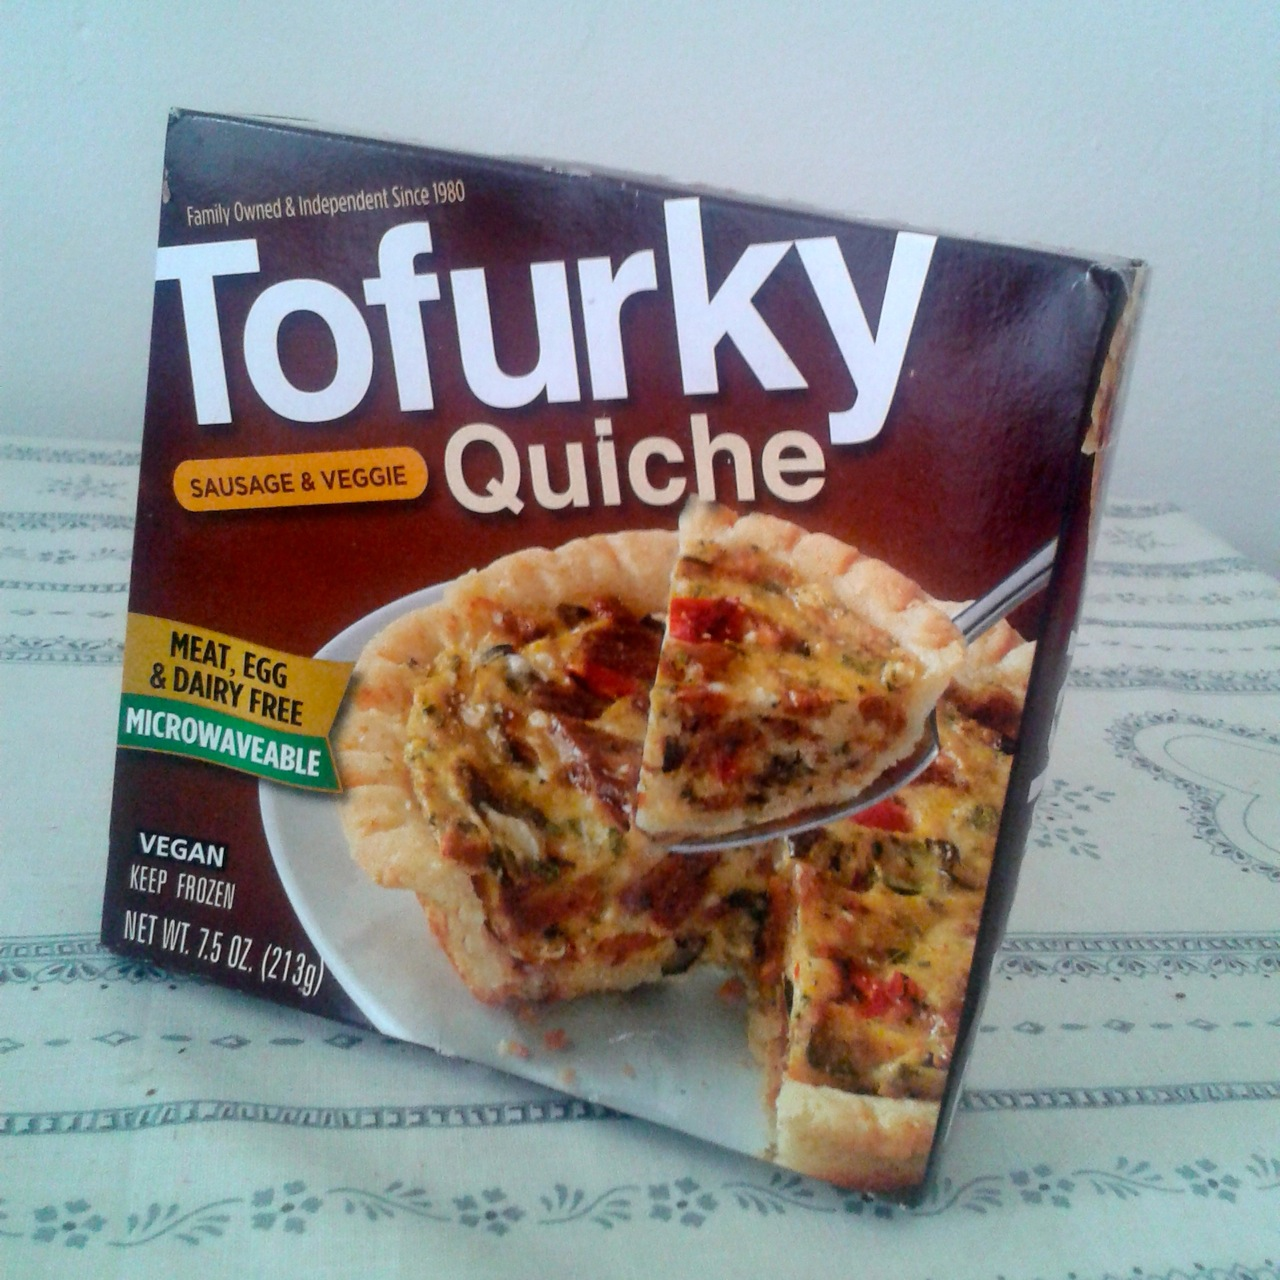 https://i1.wp.com/fatgayvegan.com/wp-content/uploads/2014/10/quiche.jpg?fit=1280%2C1280